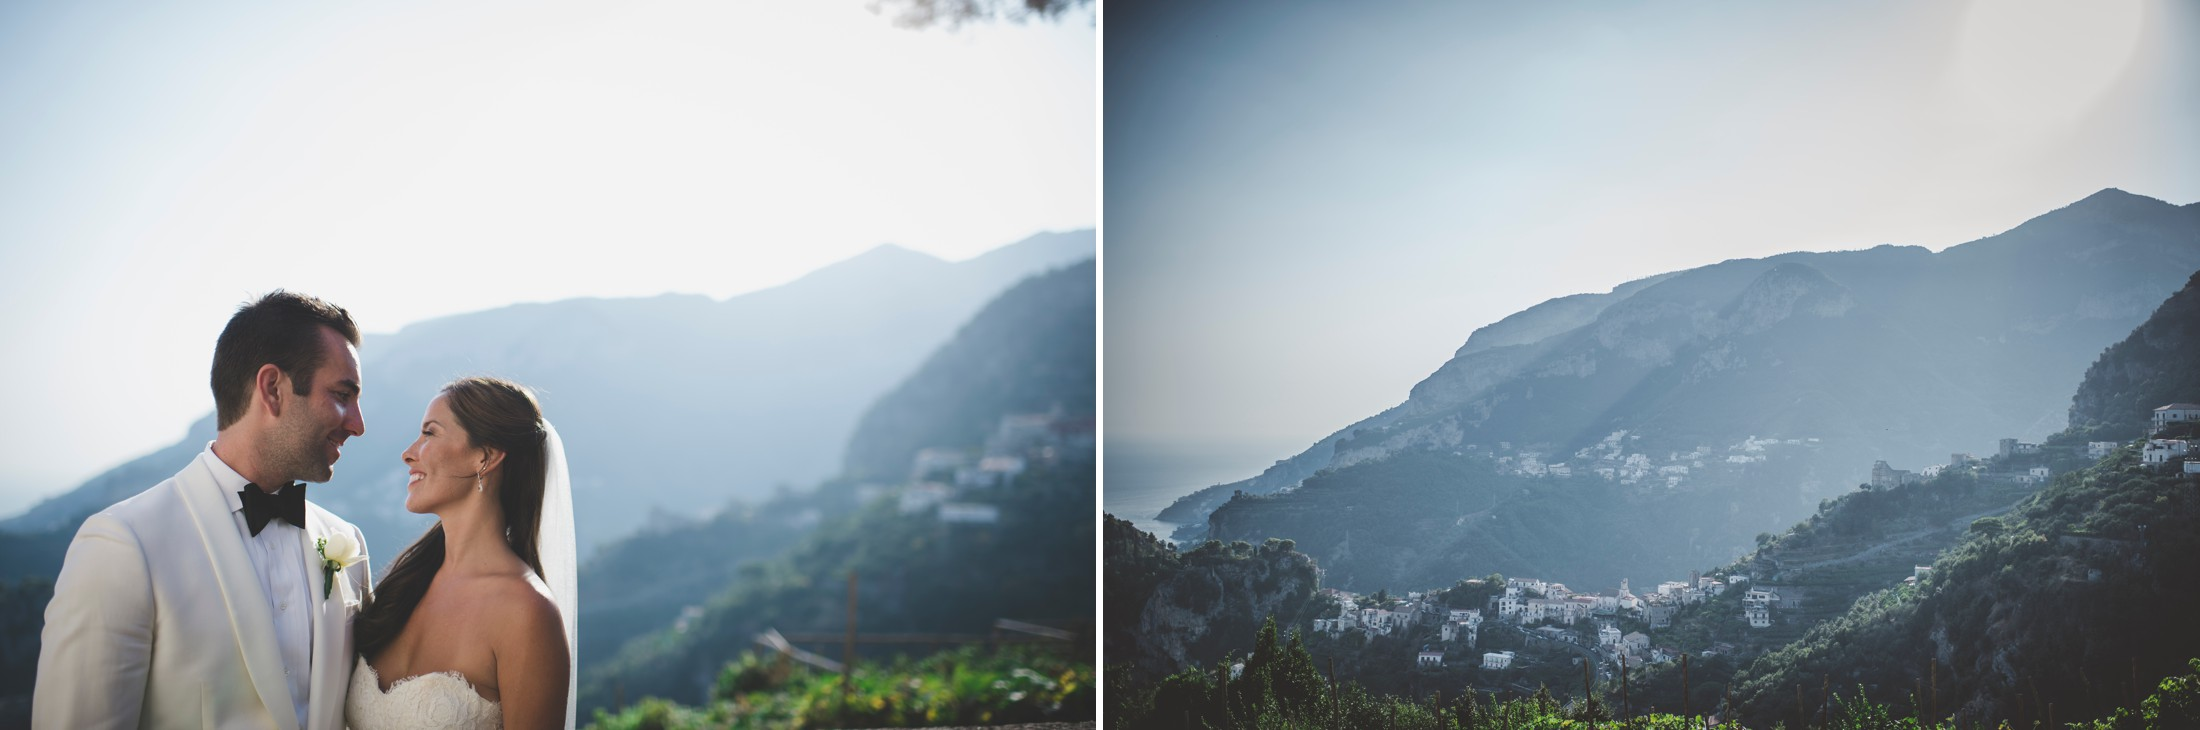 collage deride and groom's portrait and landscape from ravello